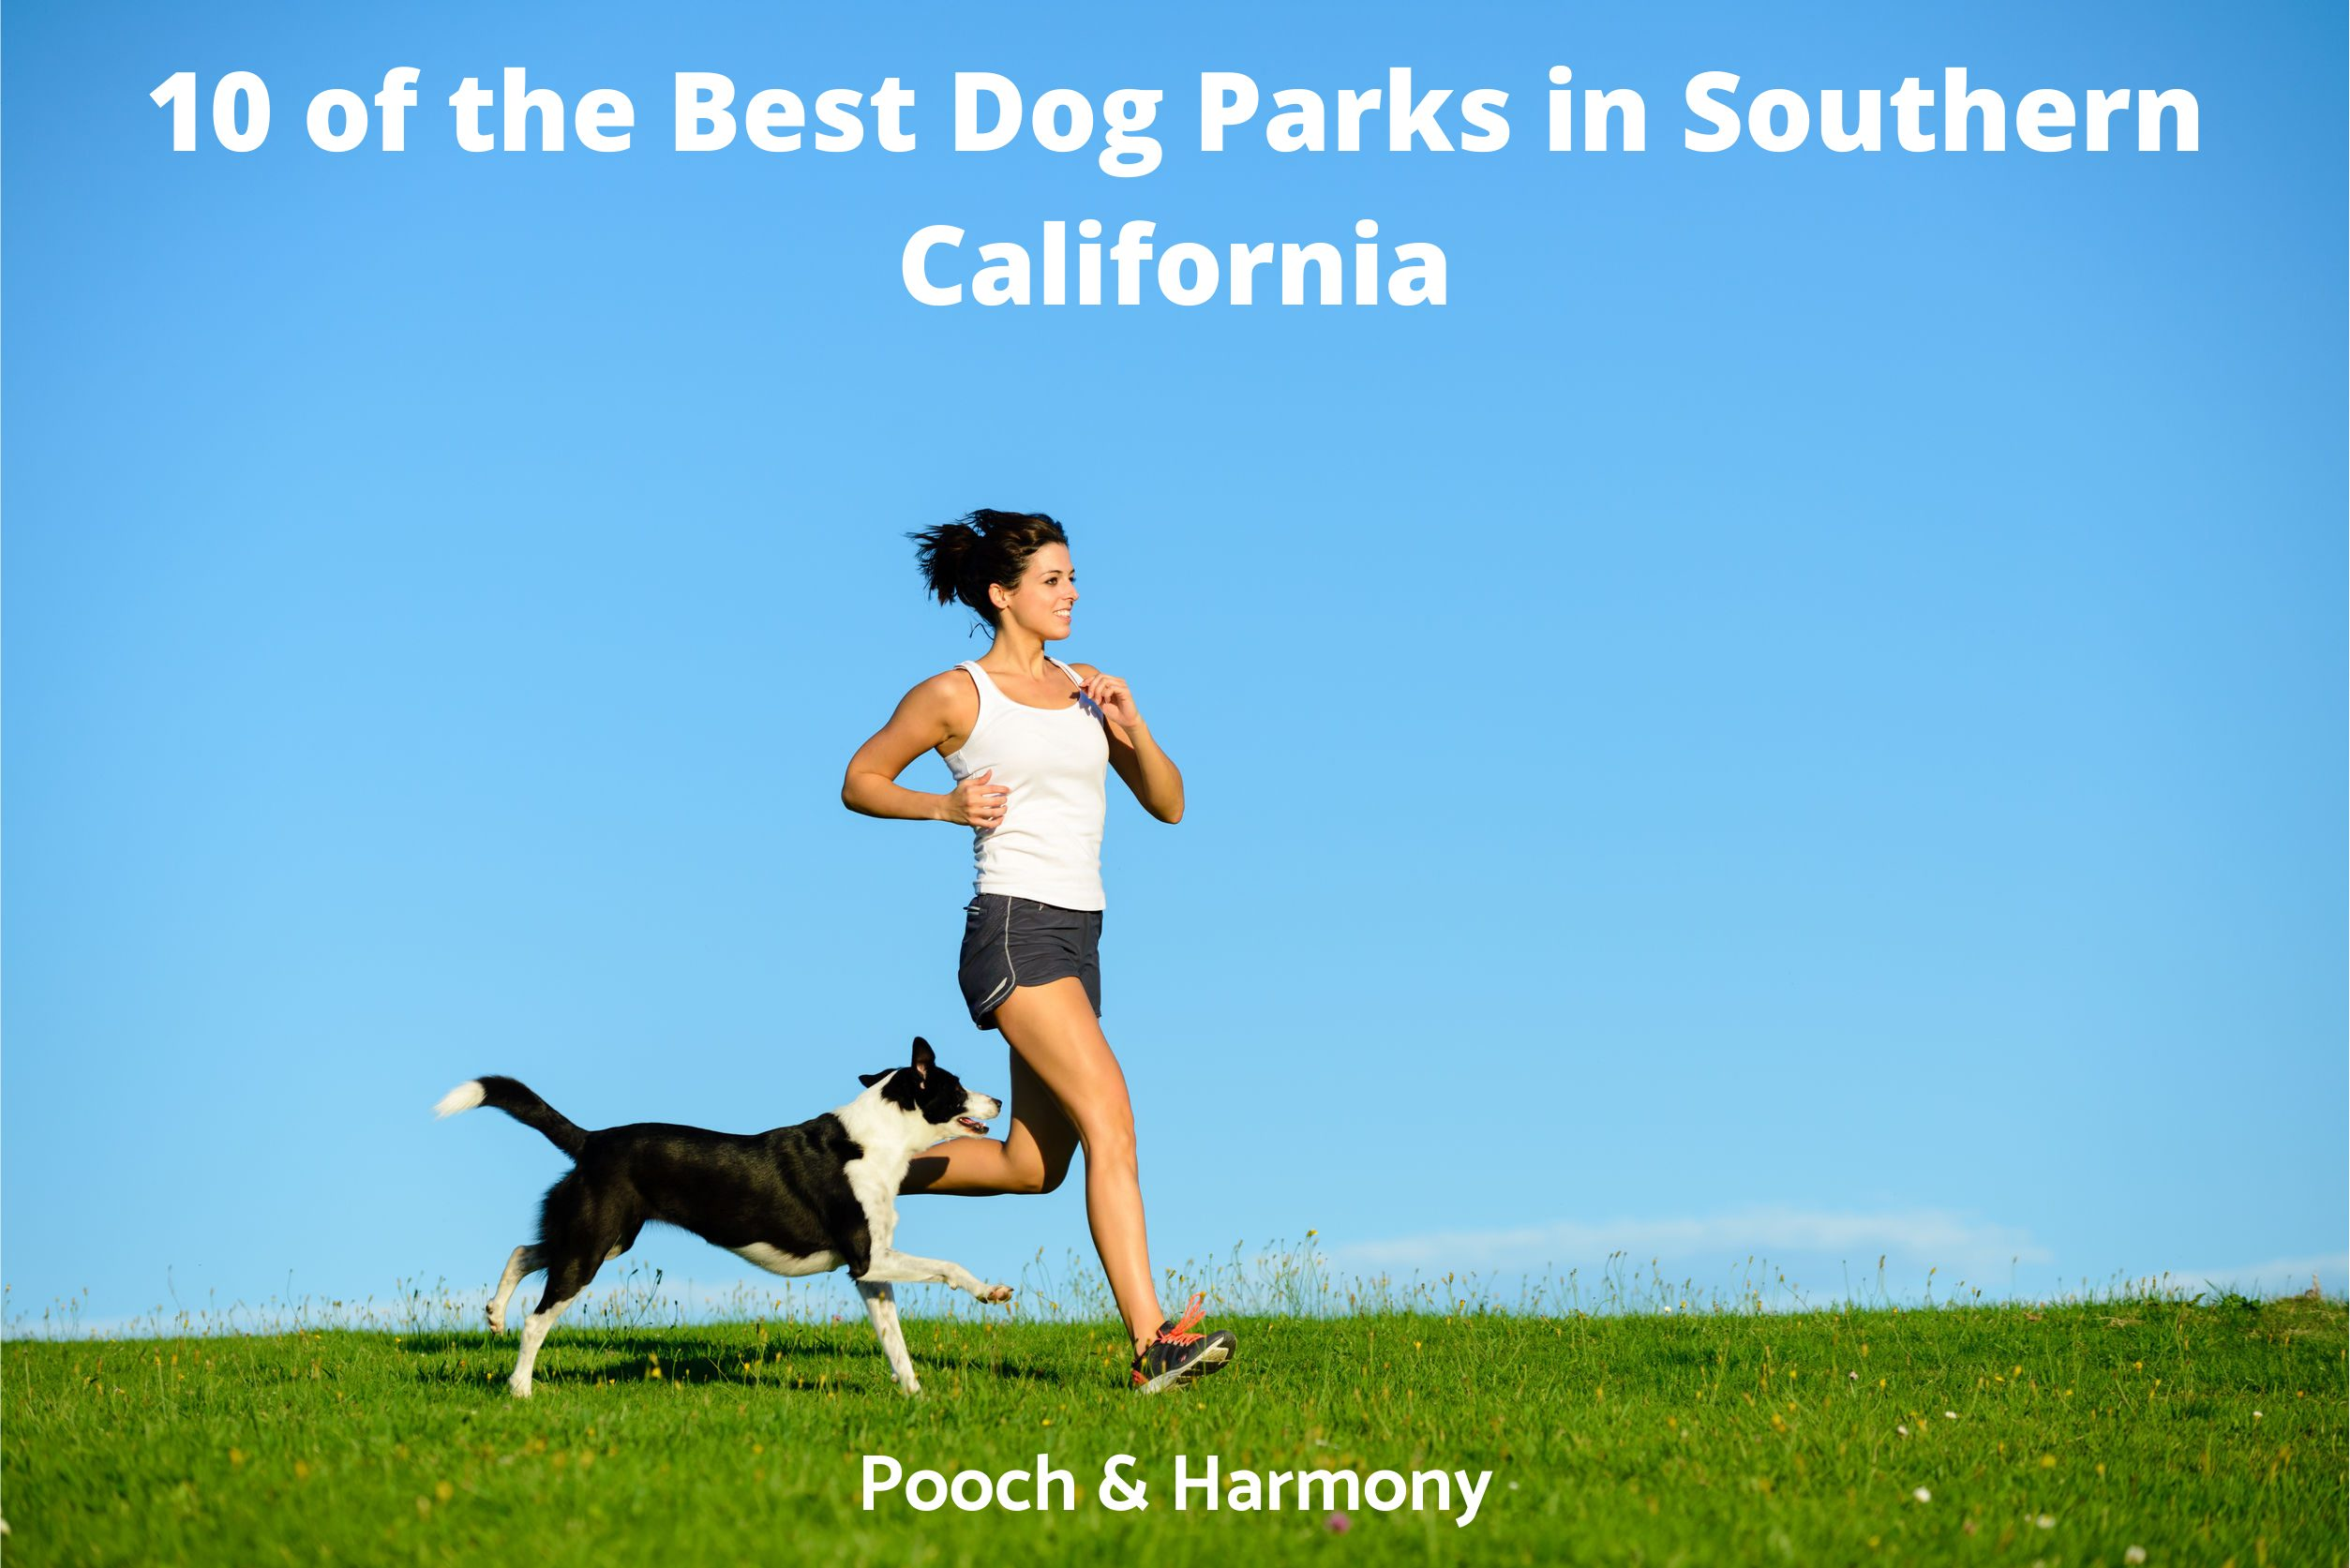 Best Dog Parks in Southern California